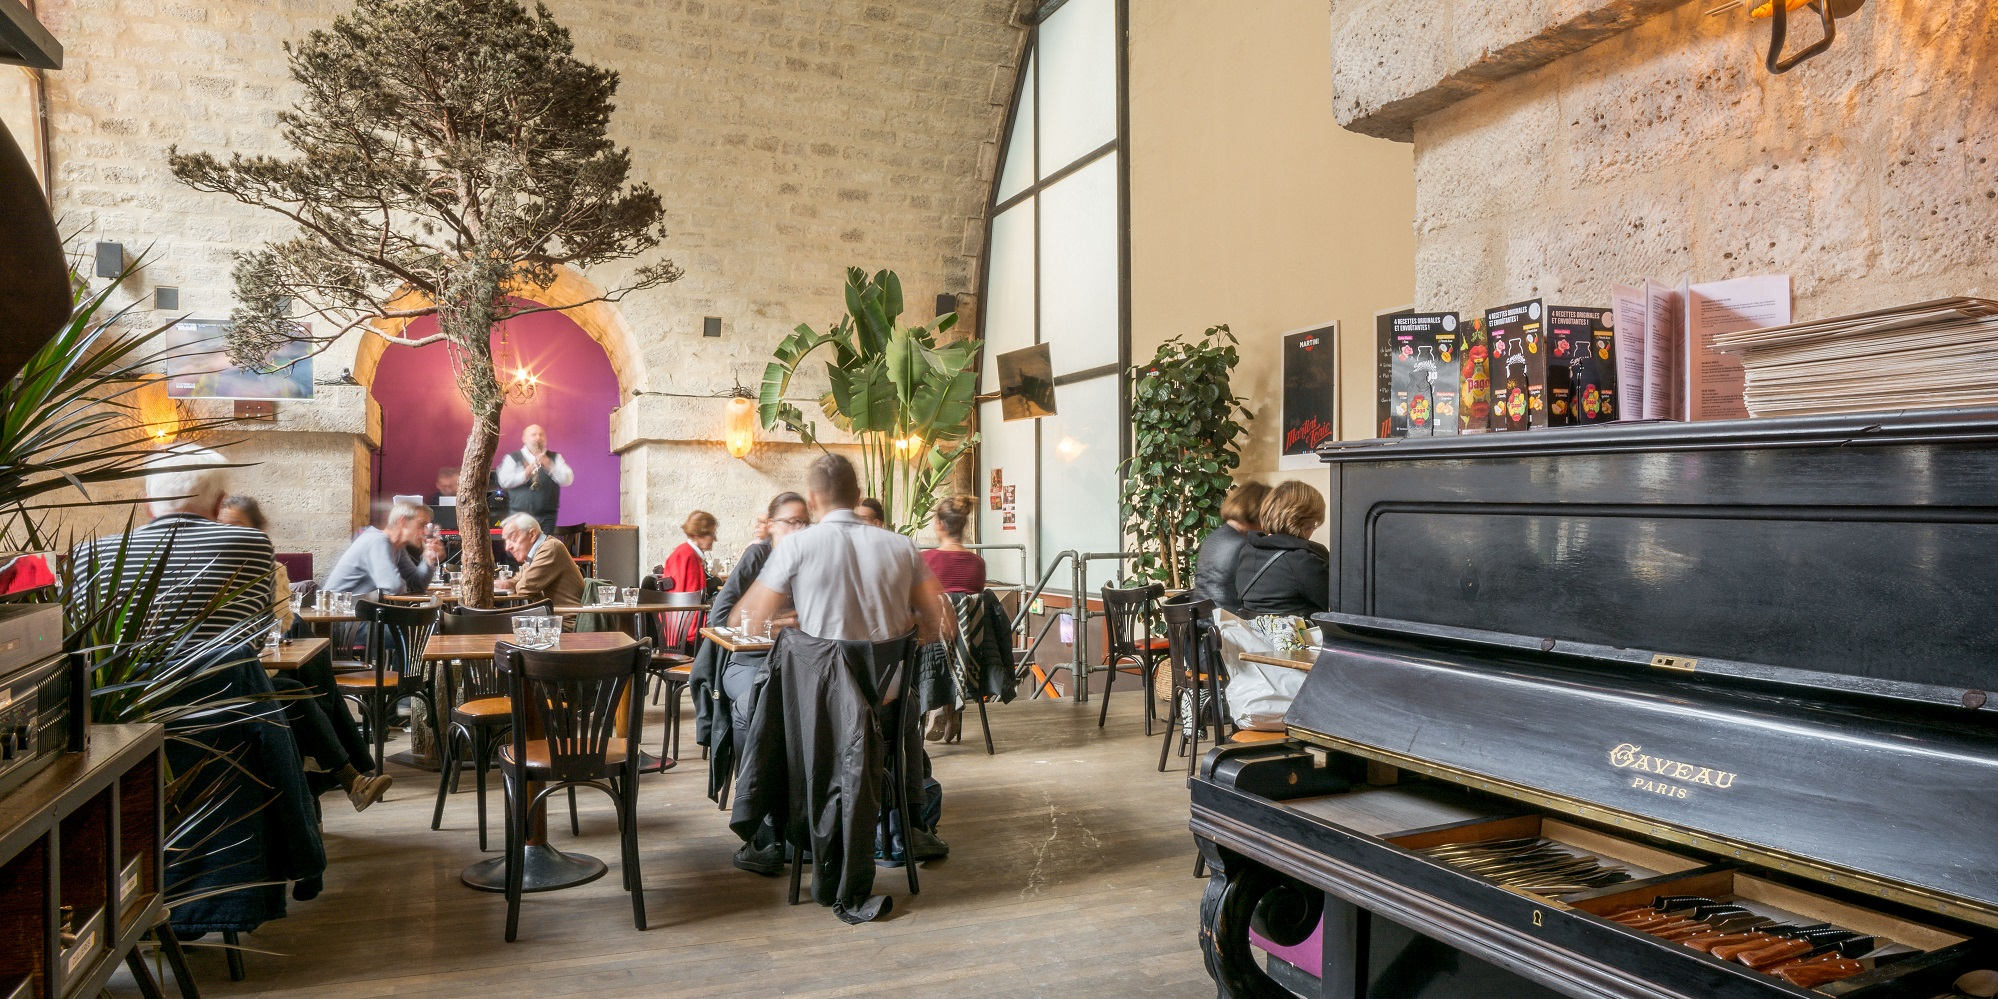 Brunch Le Viaduc Café (75012 Paris)